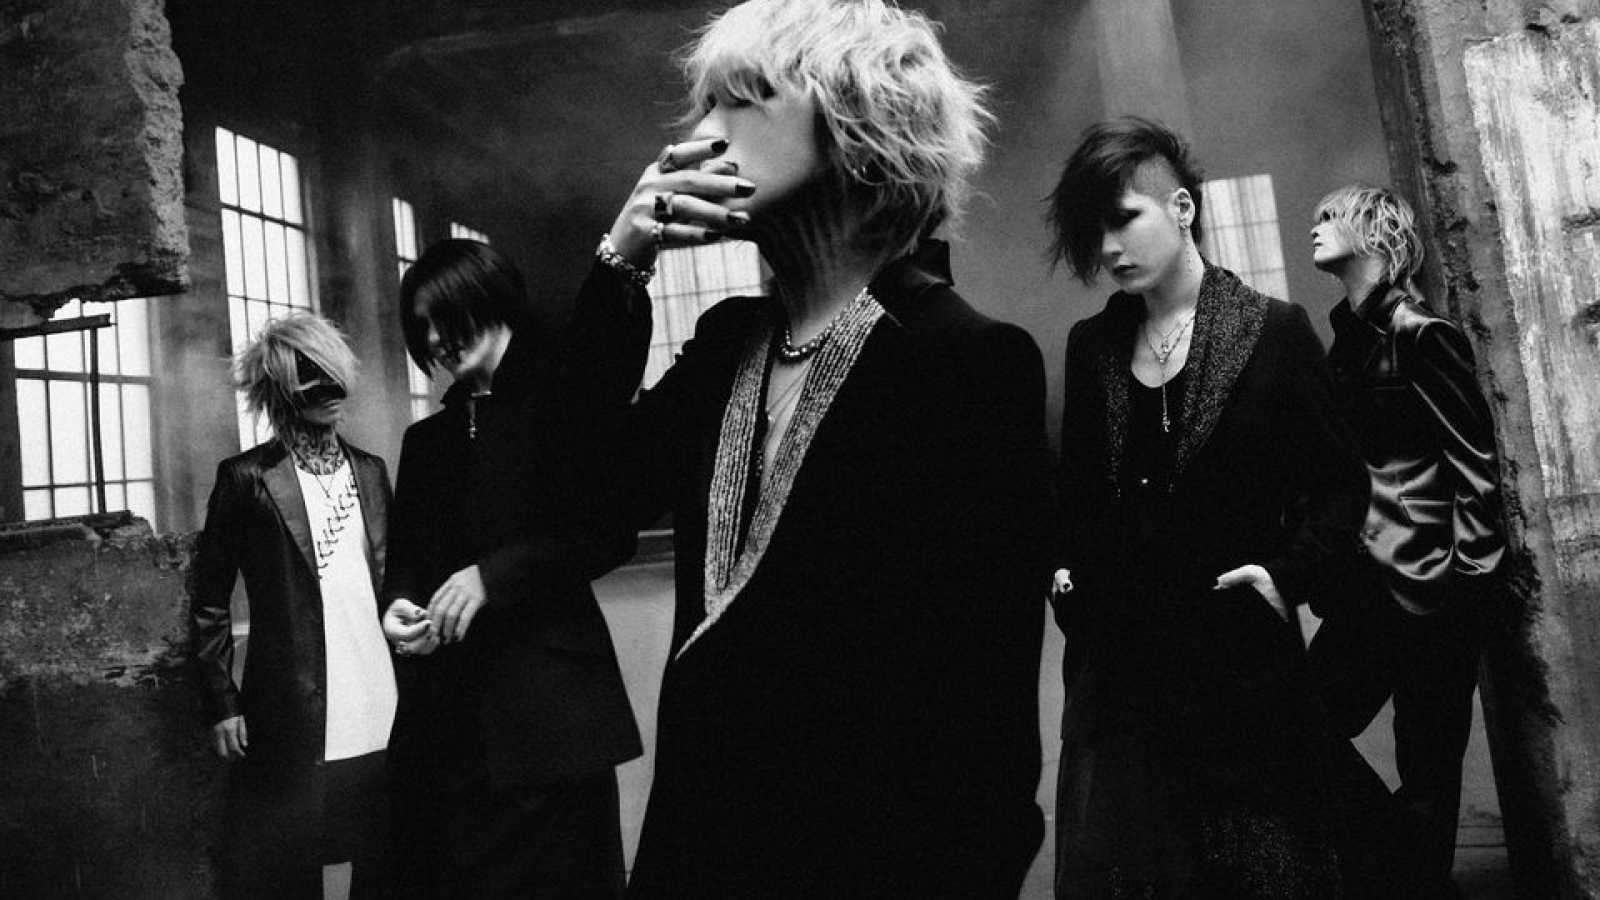 the GazettE kündigen neue Single und Album an